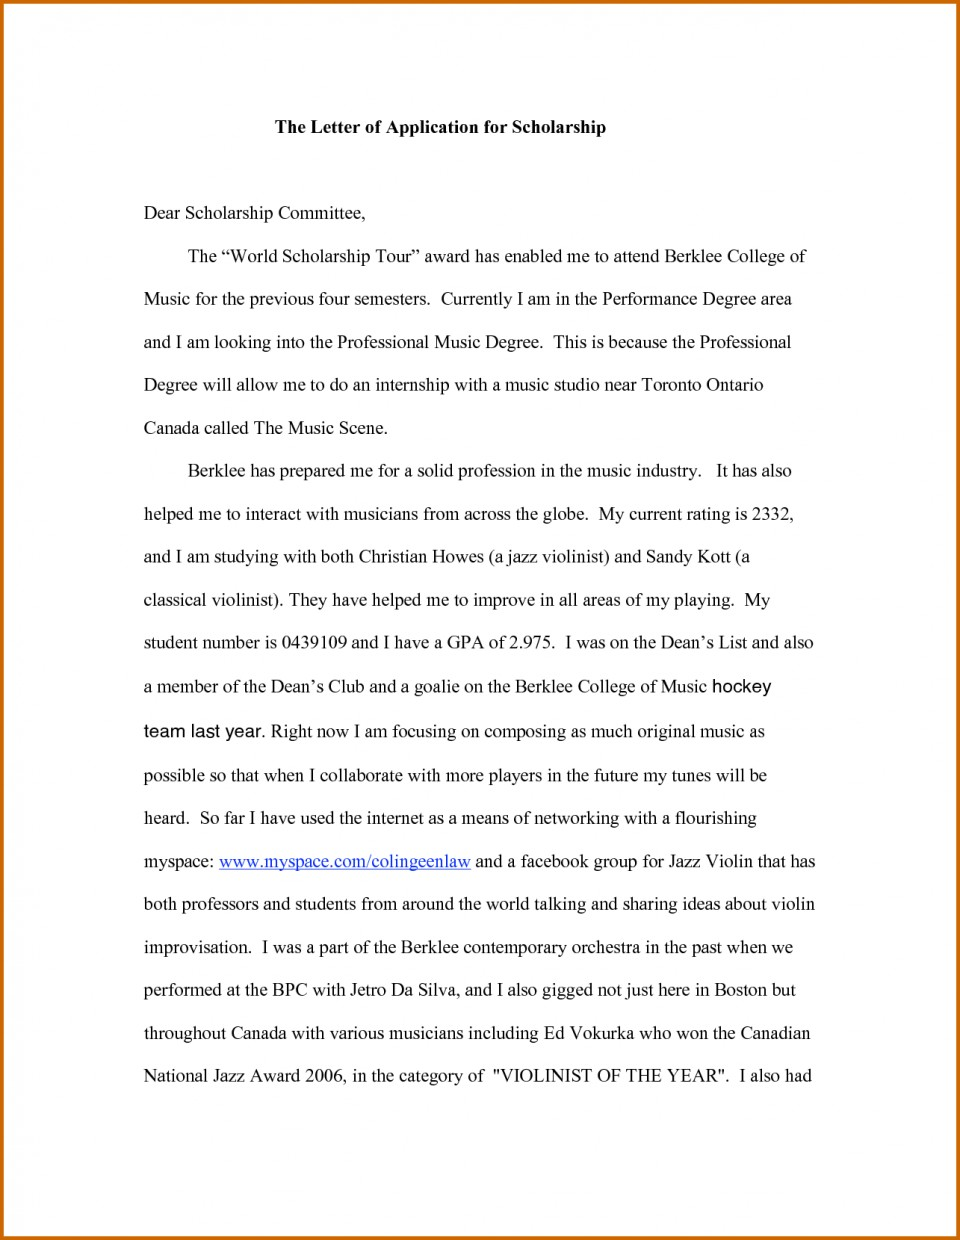 003 How To Write Application For Scholarship Sample Essays Essay Awful Masters On Financial Need 960